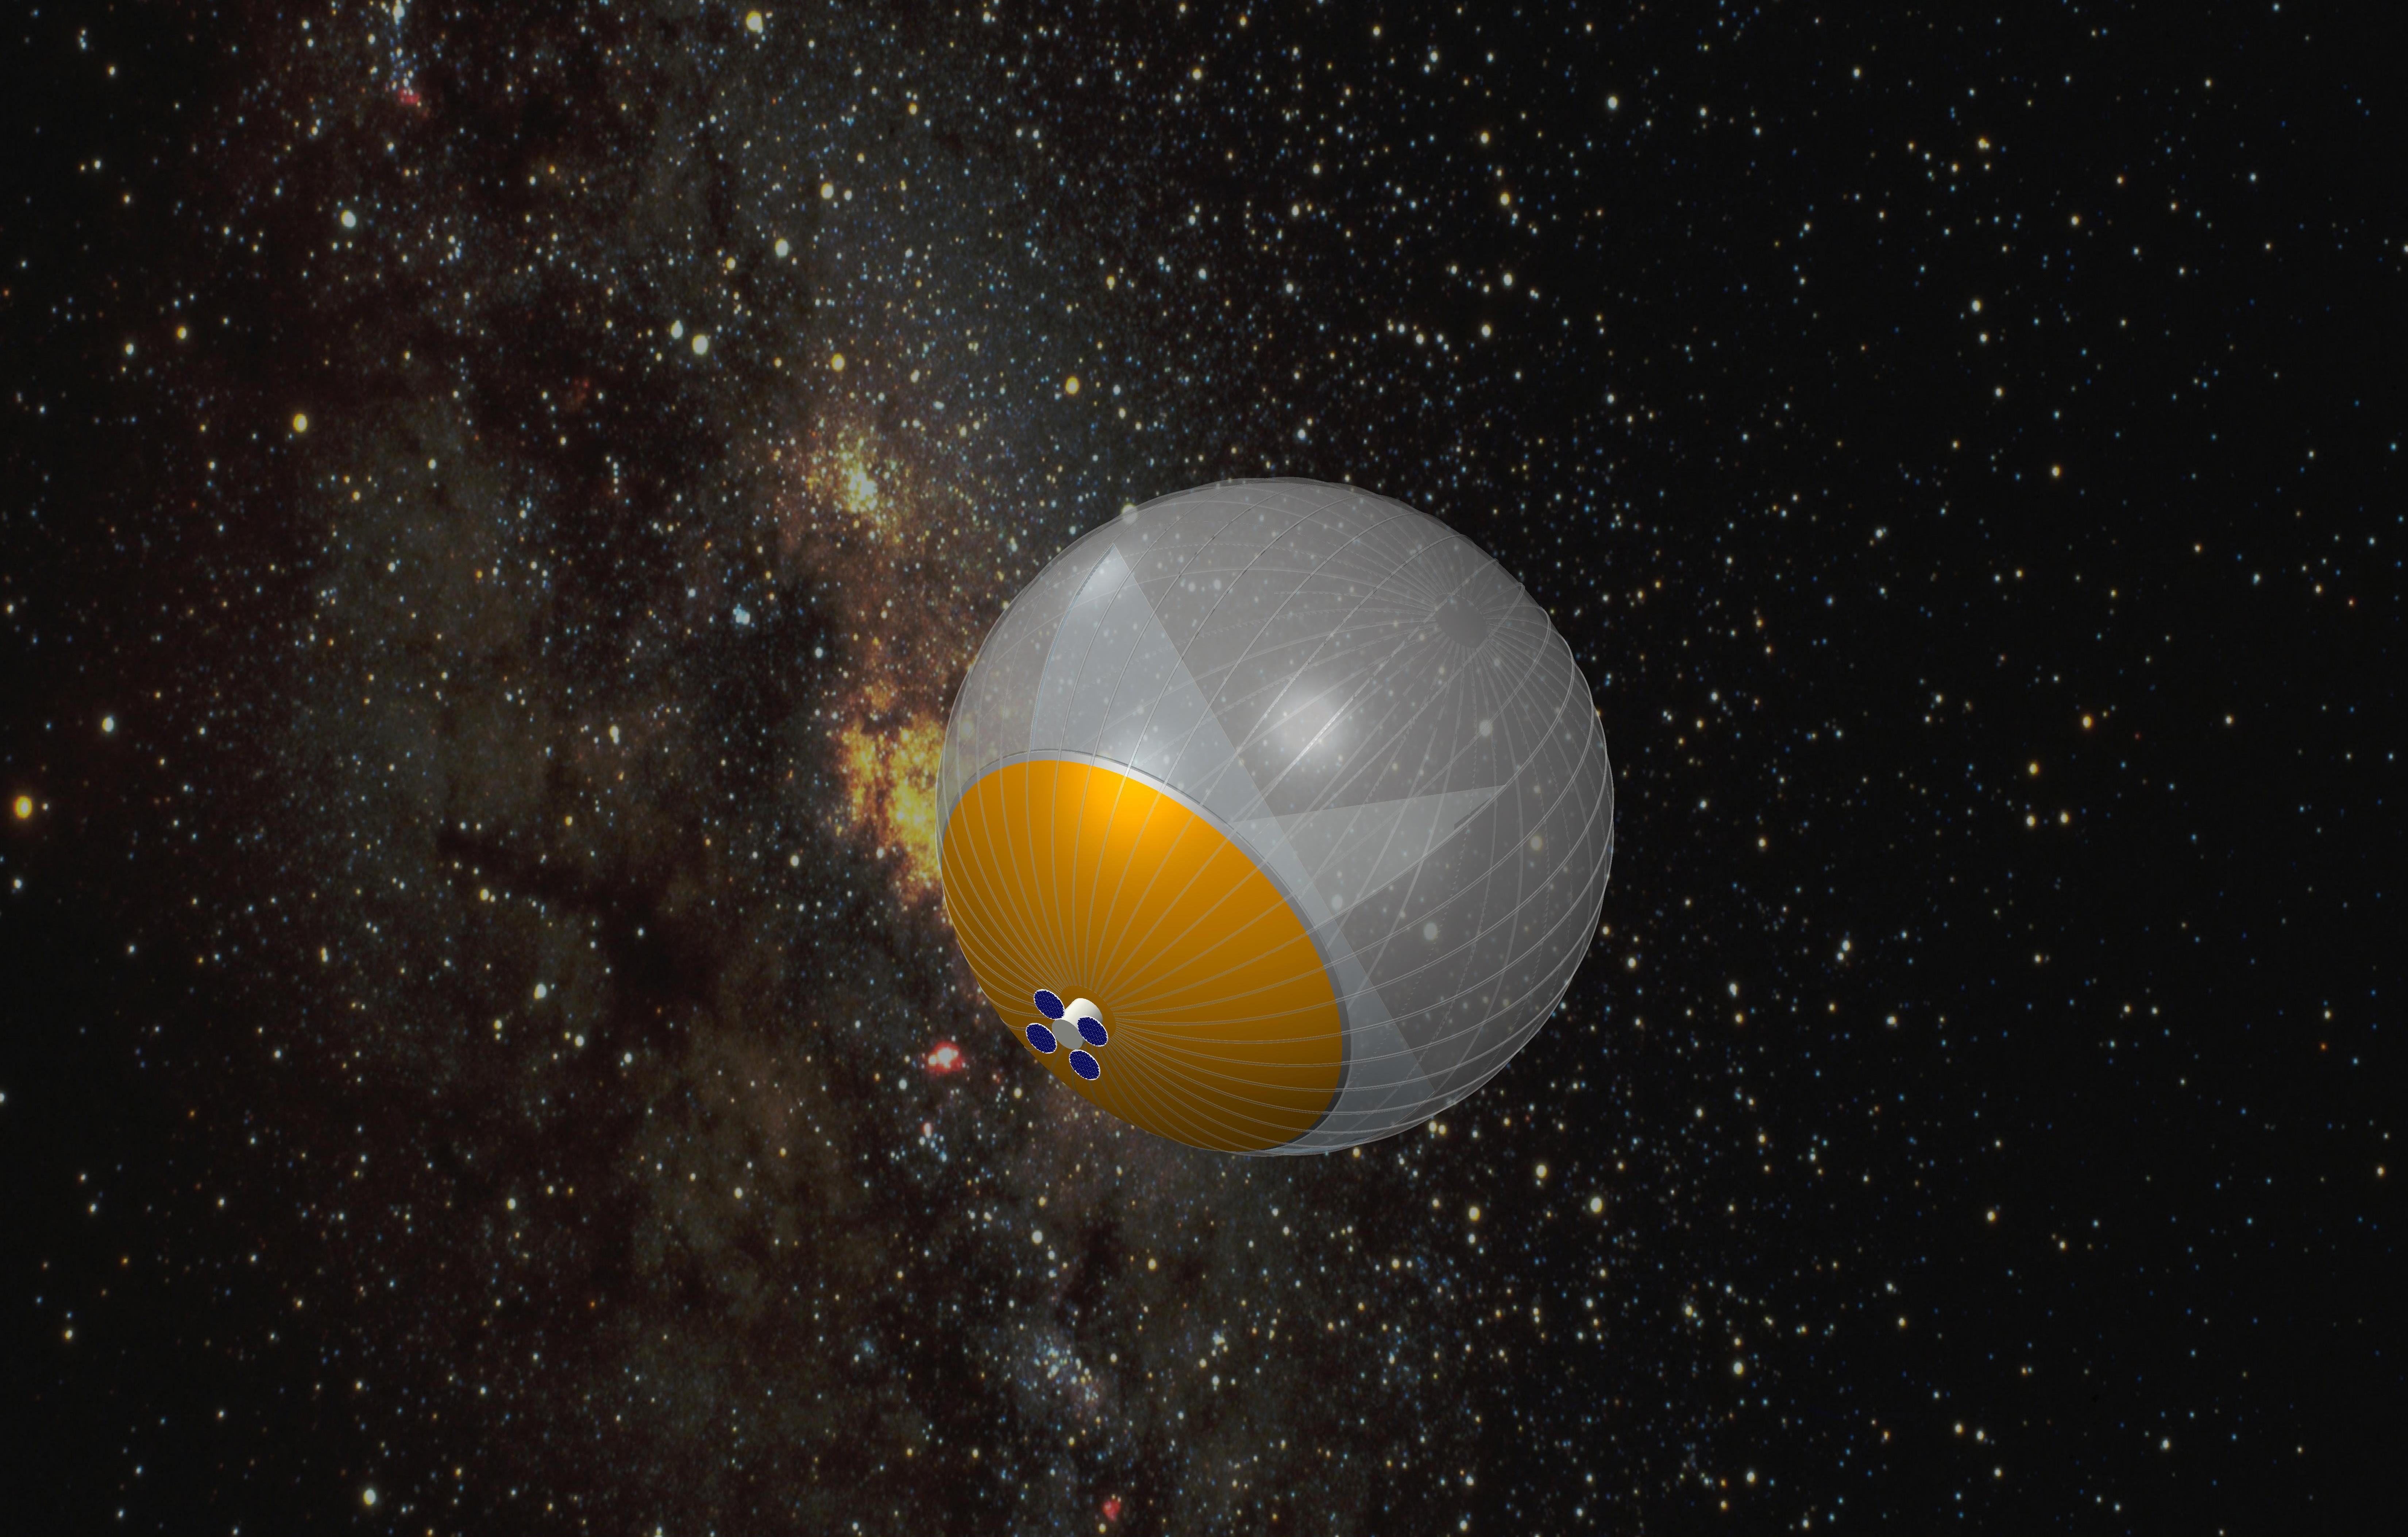 Telescopes May Ride Giant Balloons to Better See the Stars